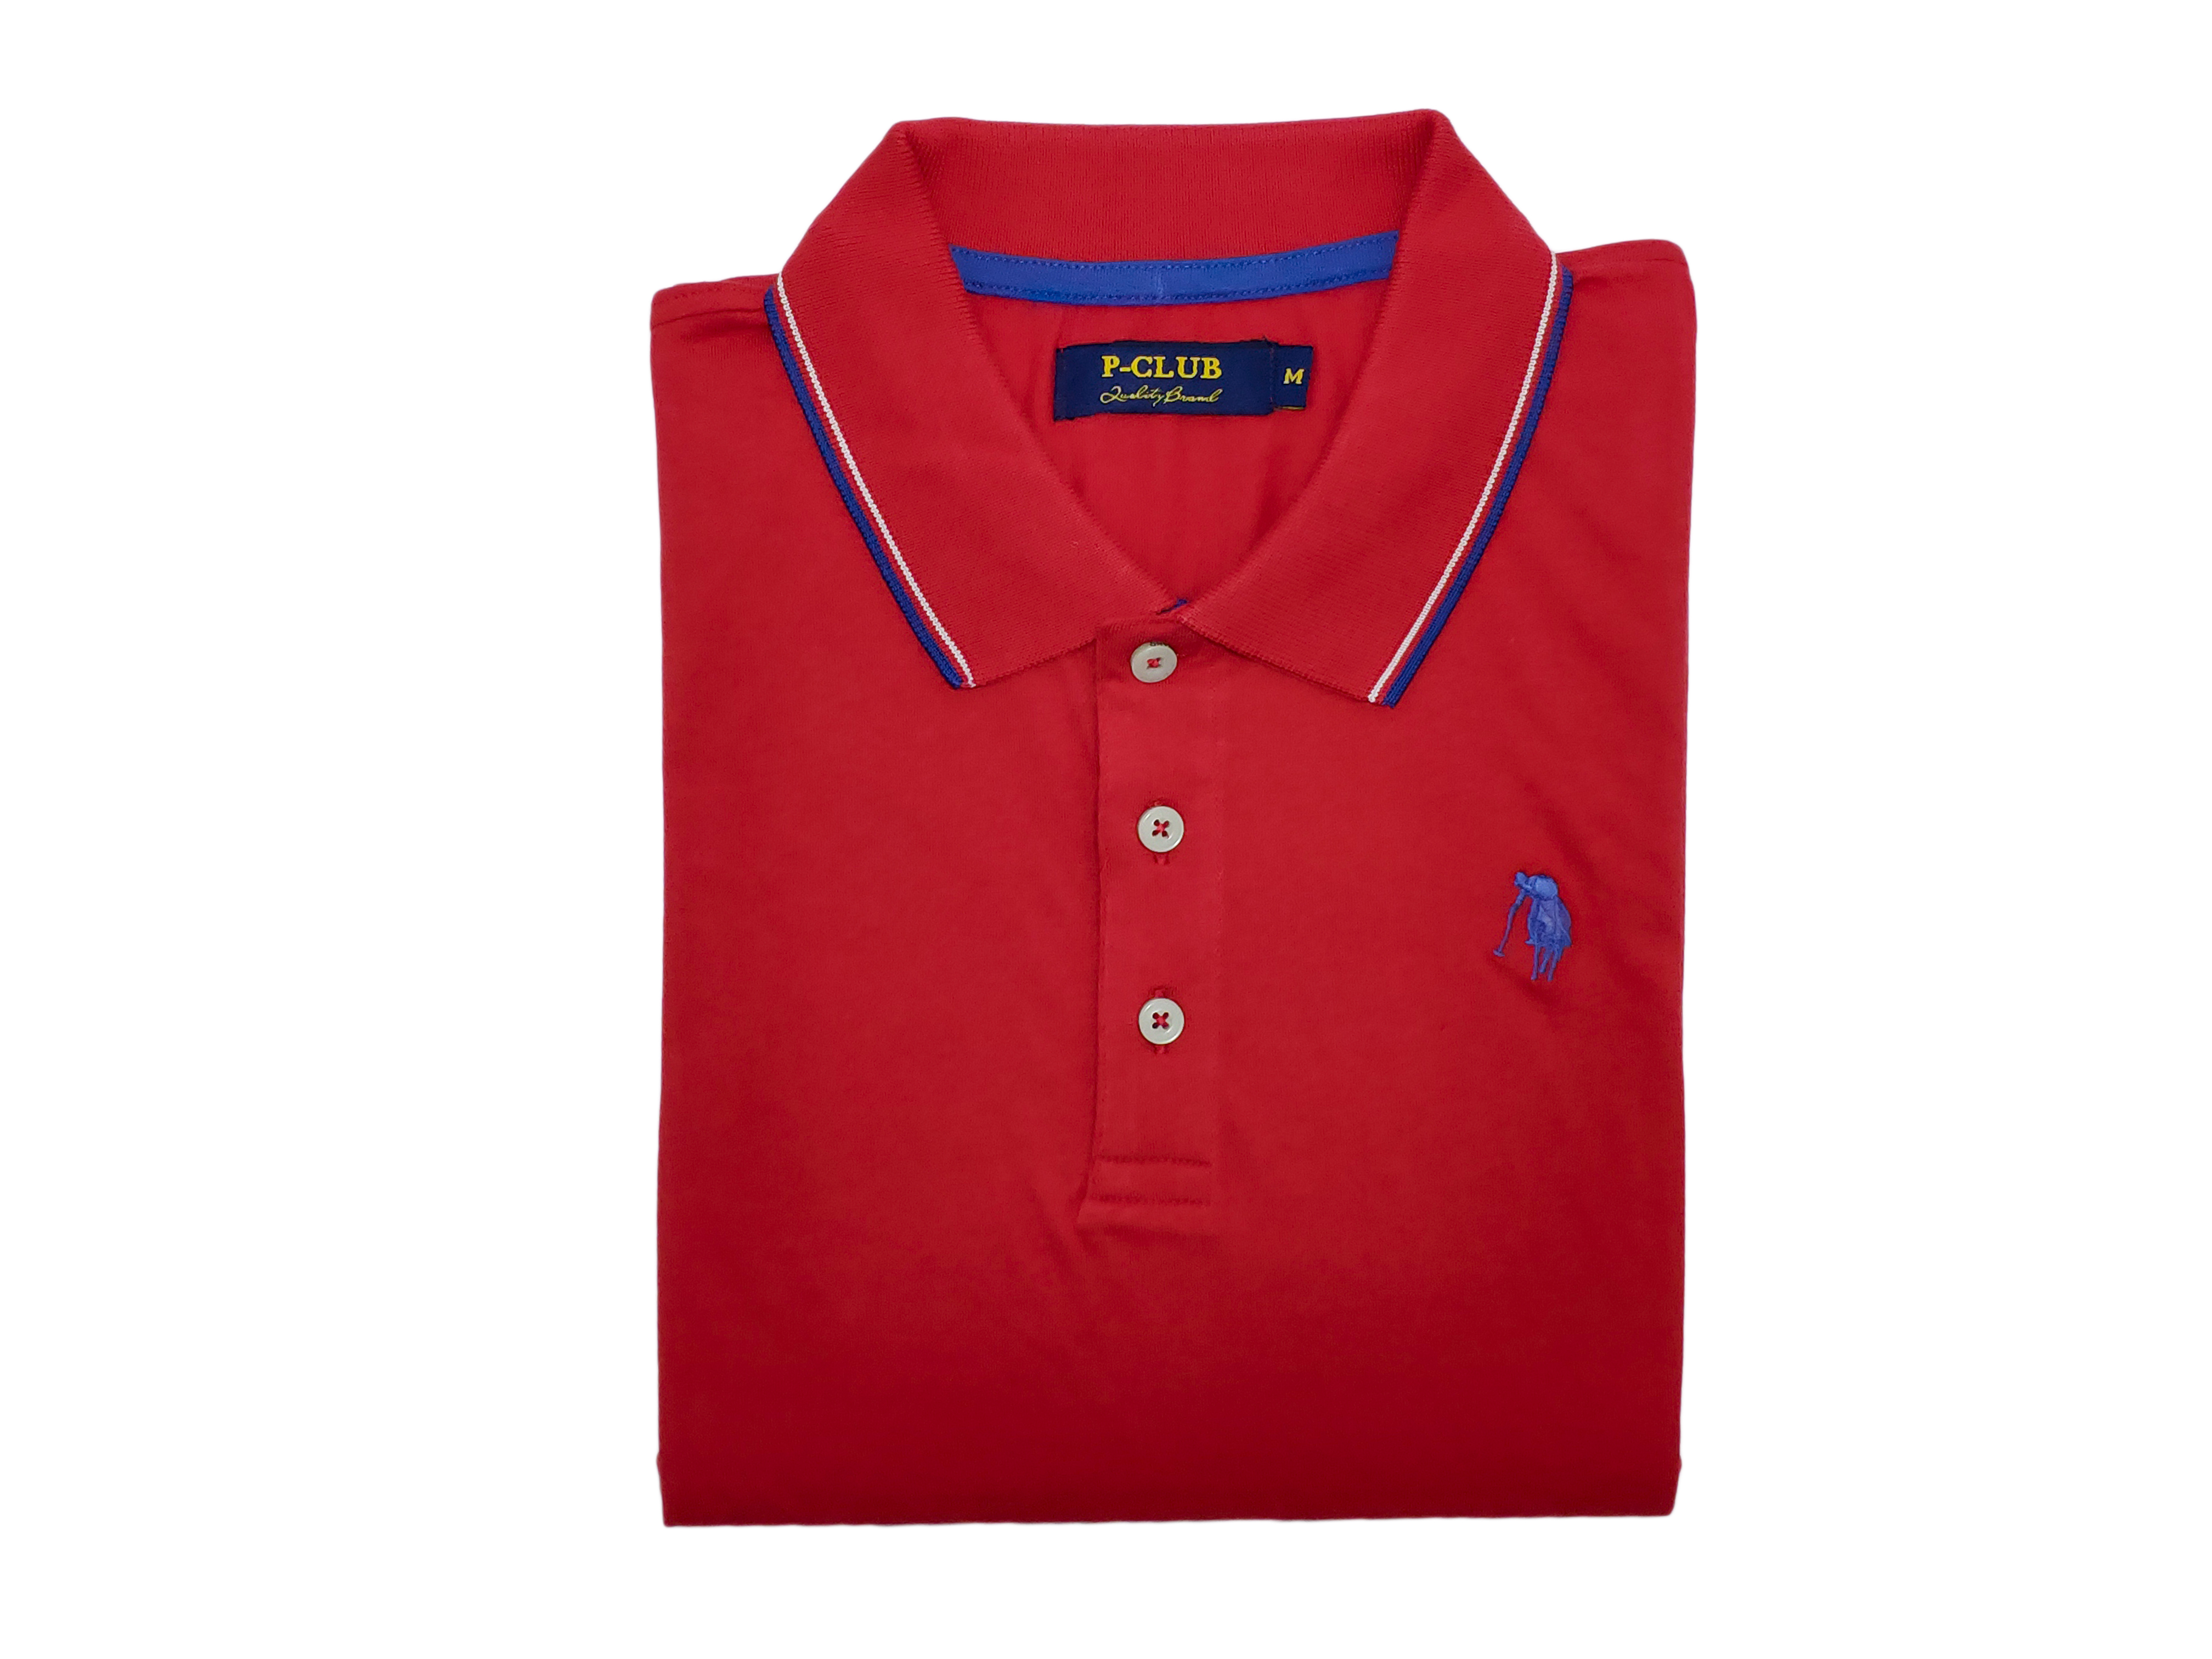 polo m/m jersey uomo POLO BEVERLY HILLS   Polo m/m   MAG22880ROSSO